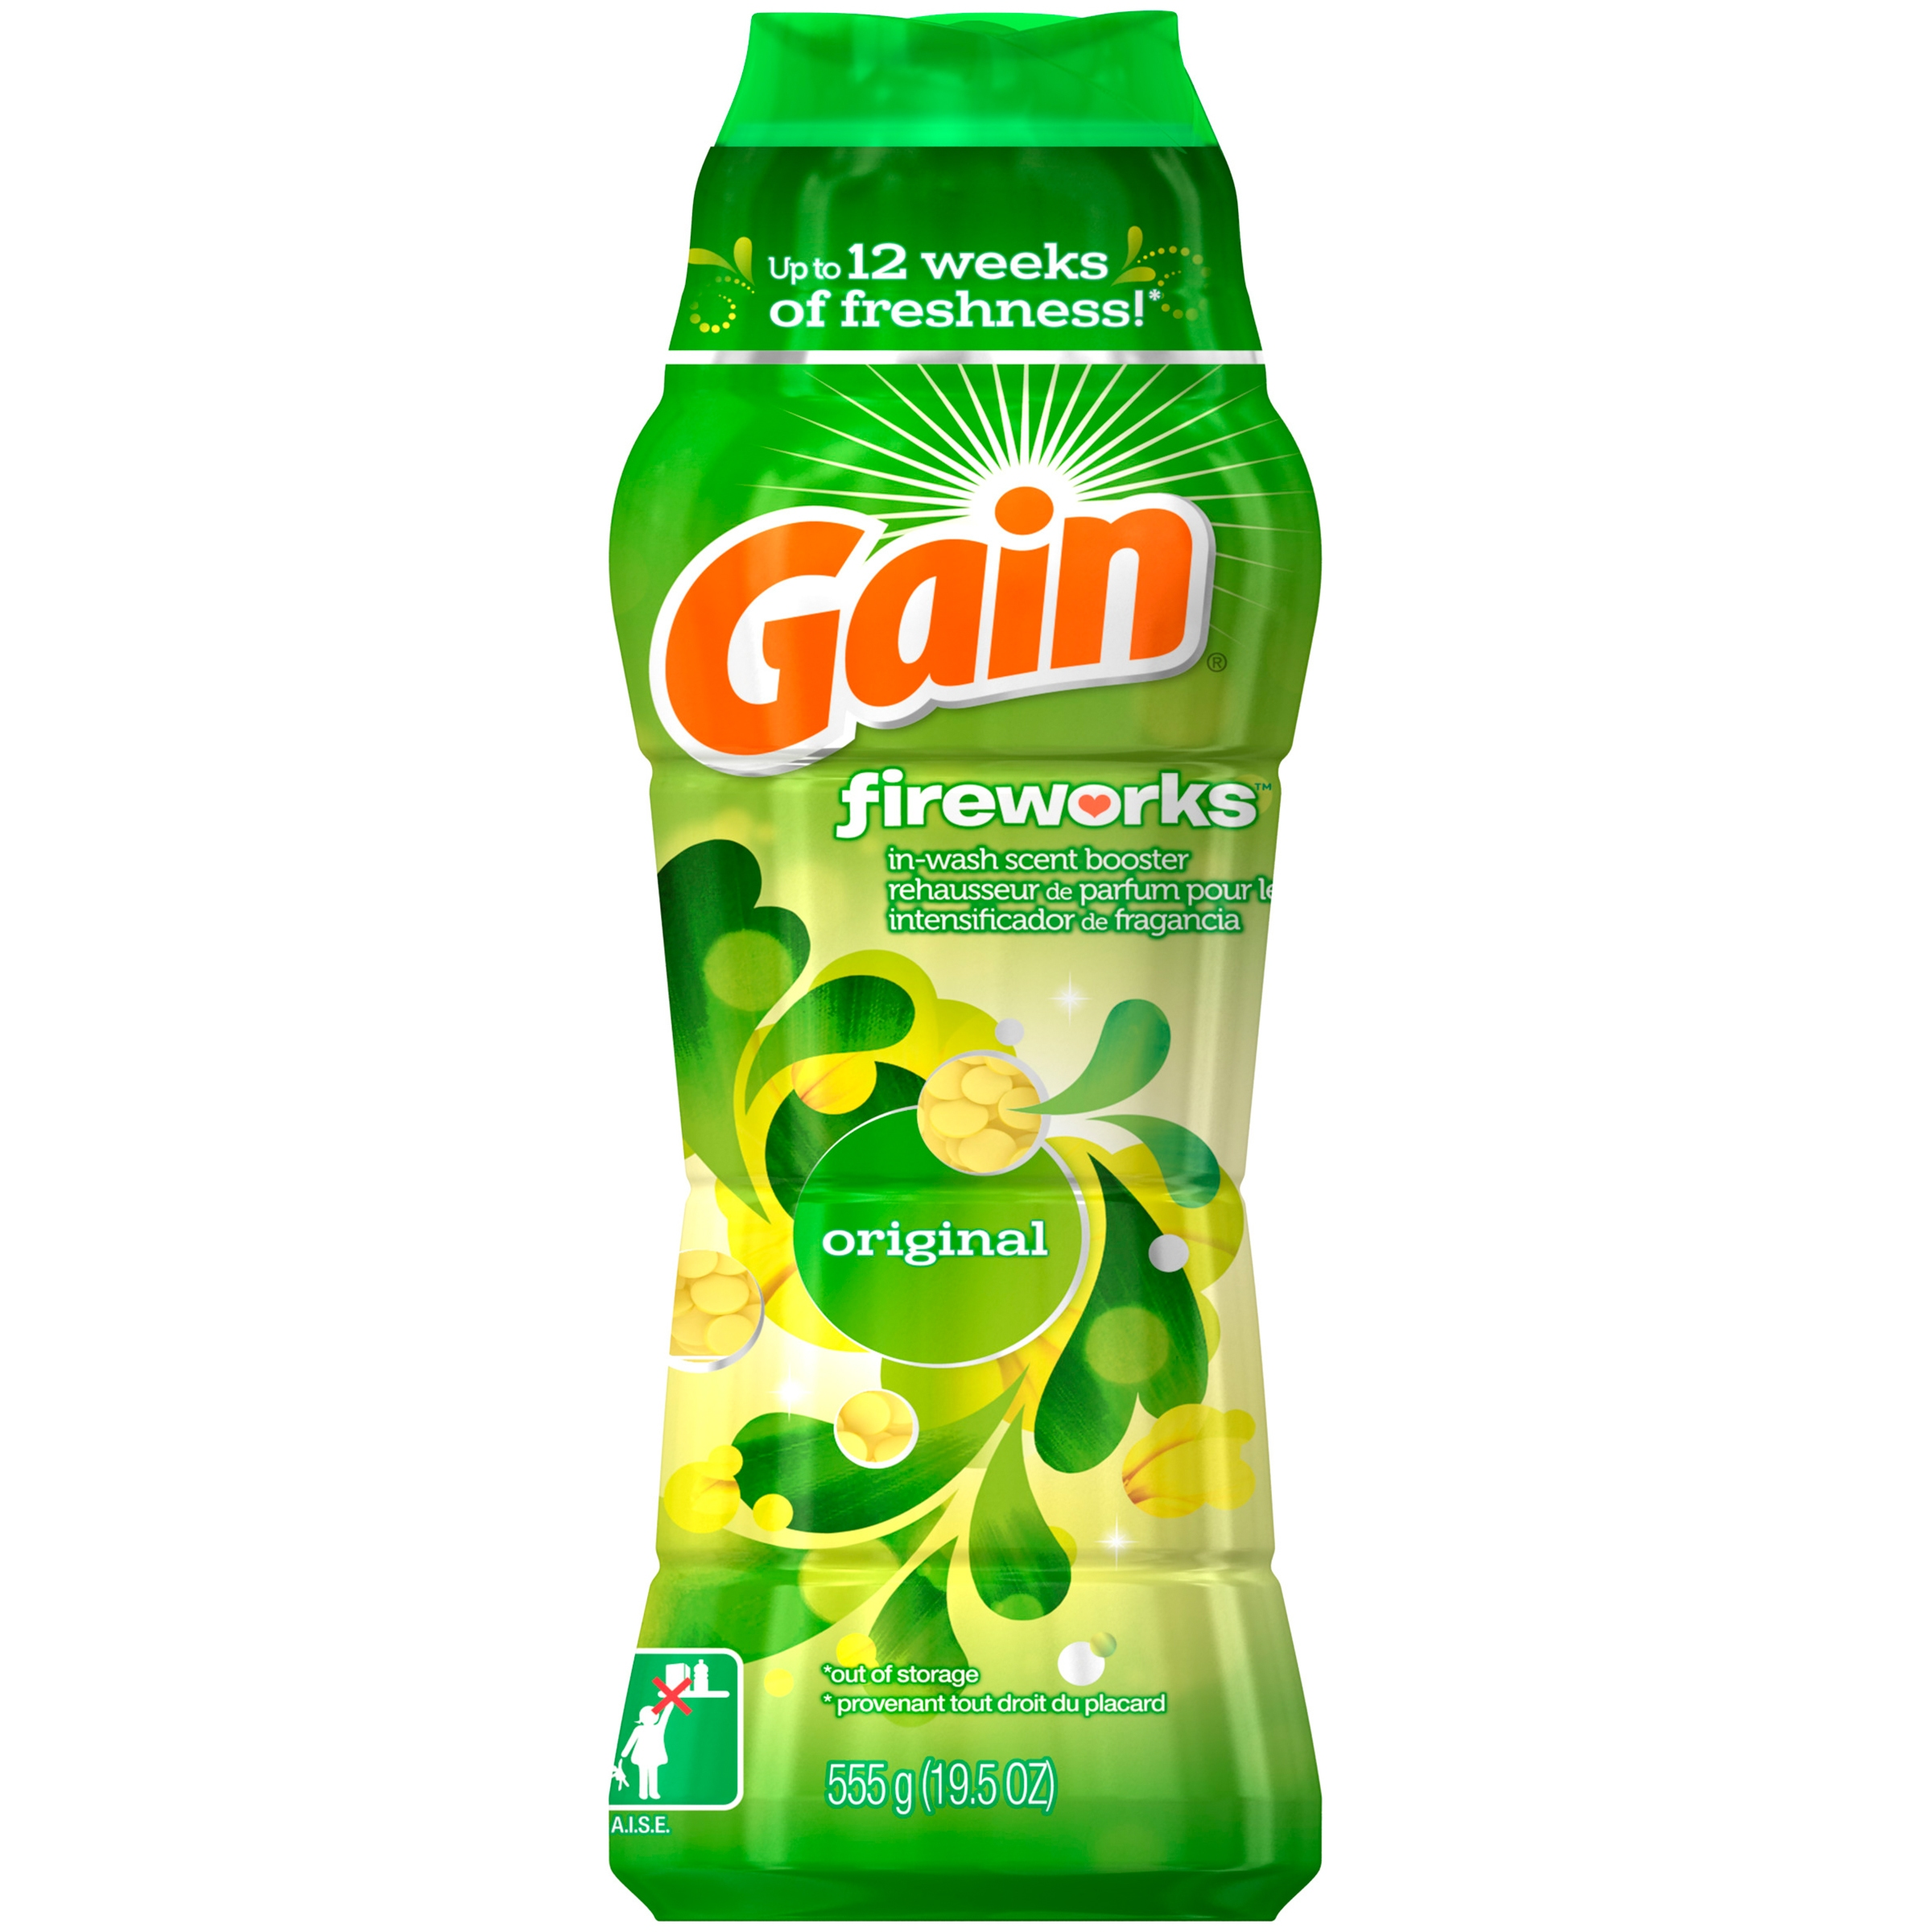 Gain Fireworks Original In-wash Scent Booster Beads, 19.5 oz